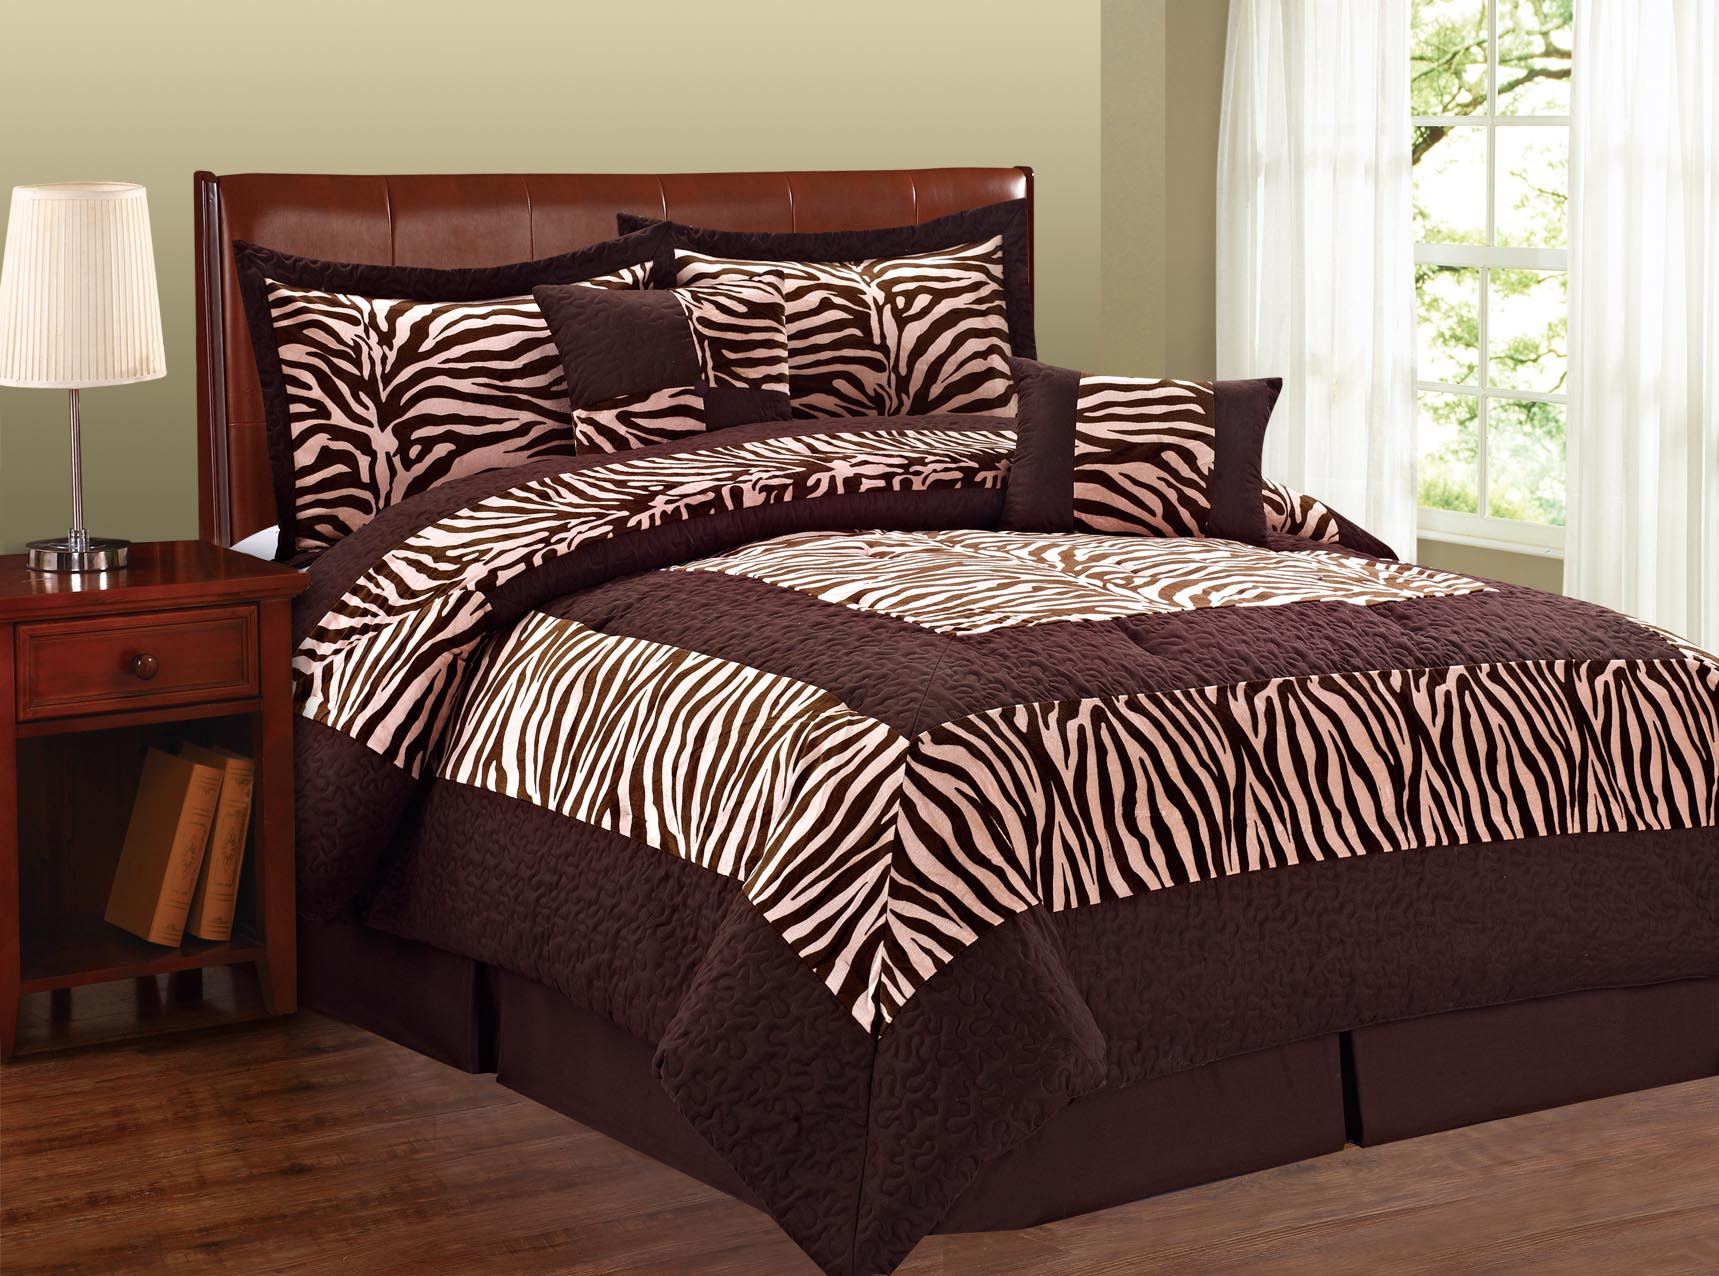 Cheap zebra print bedroom sets - Brown Light Pink Zebra Print Comforter Bed Set